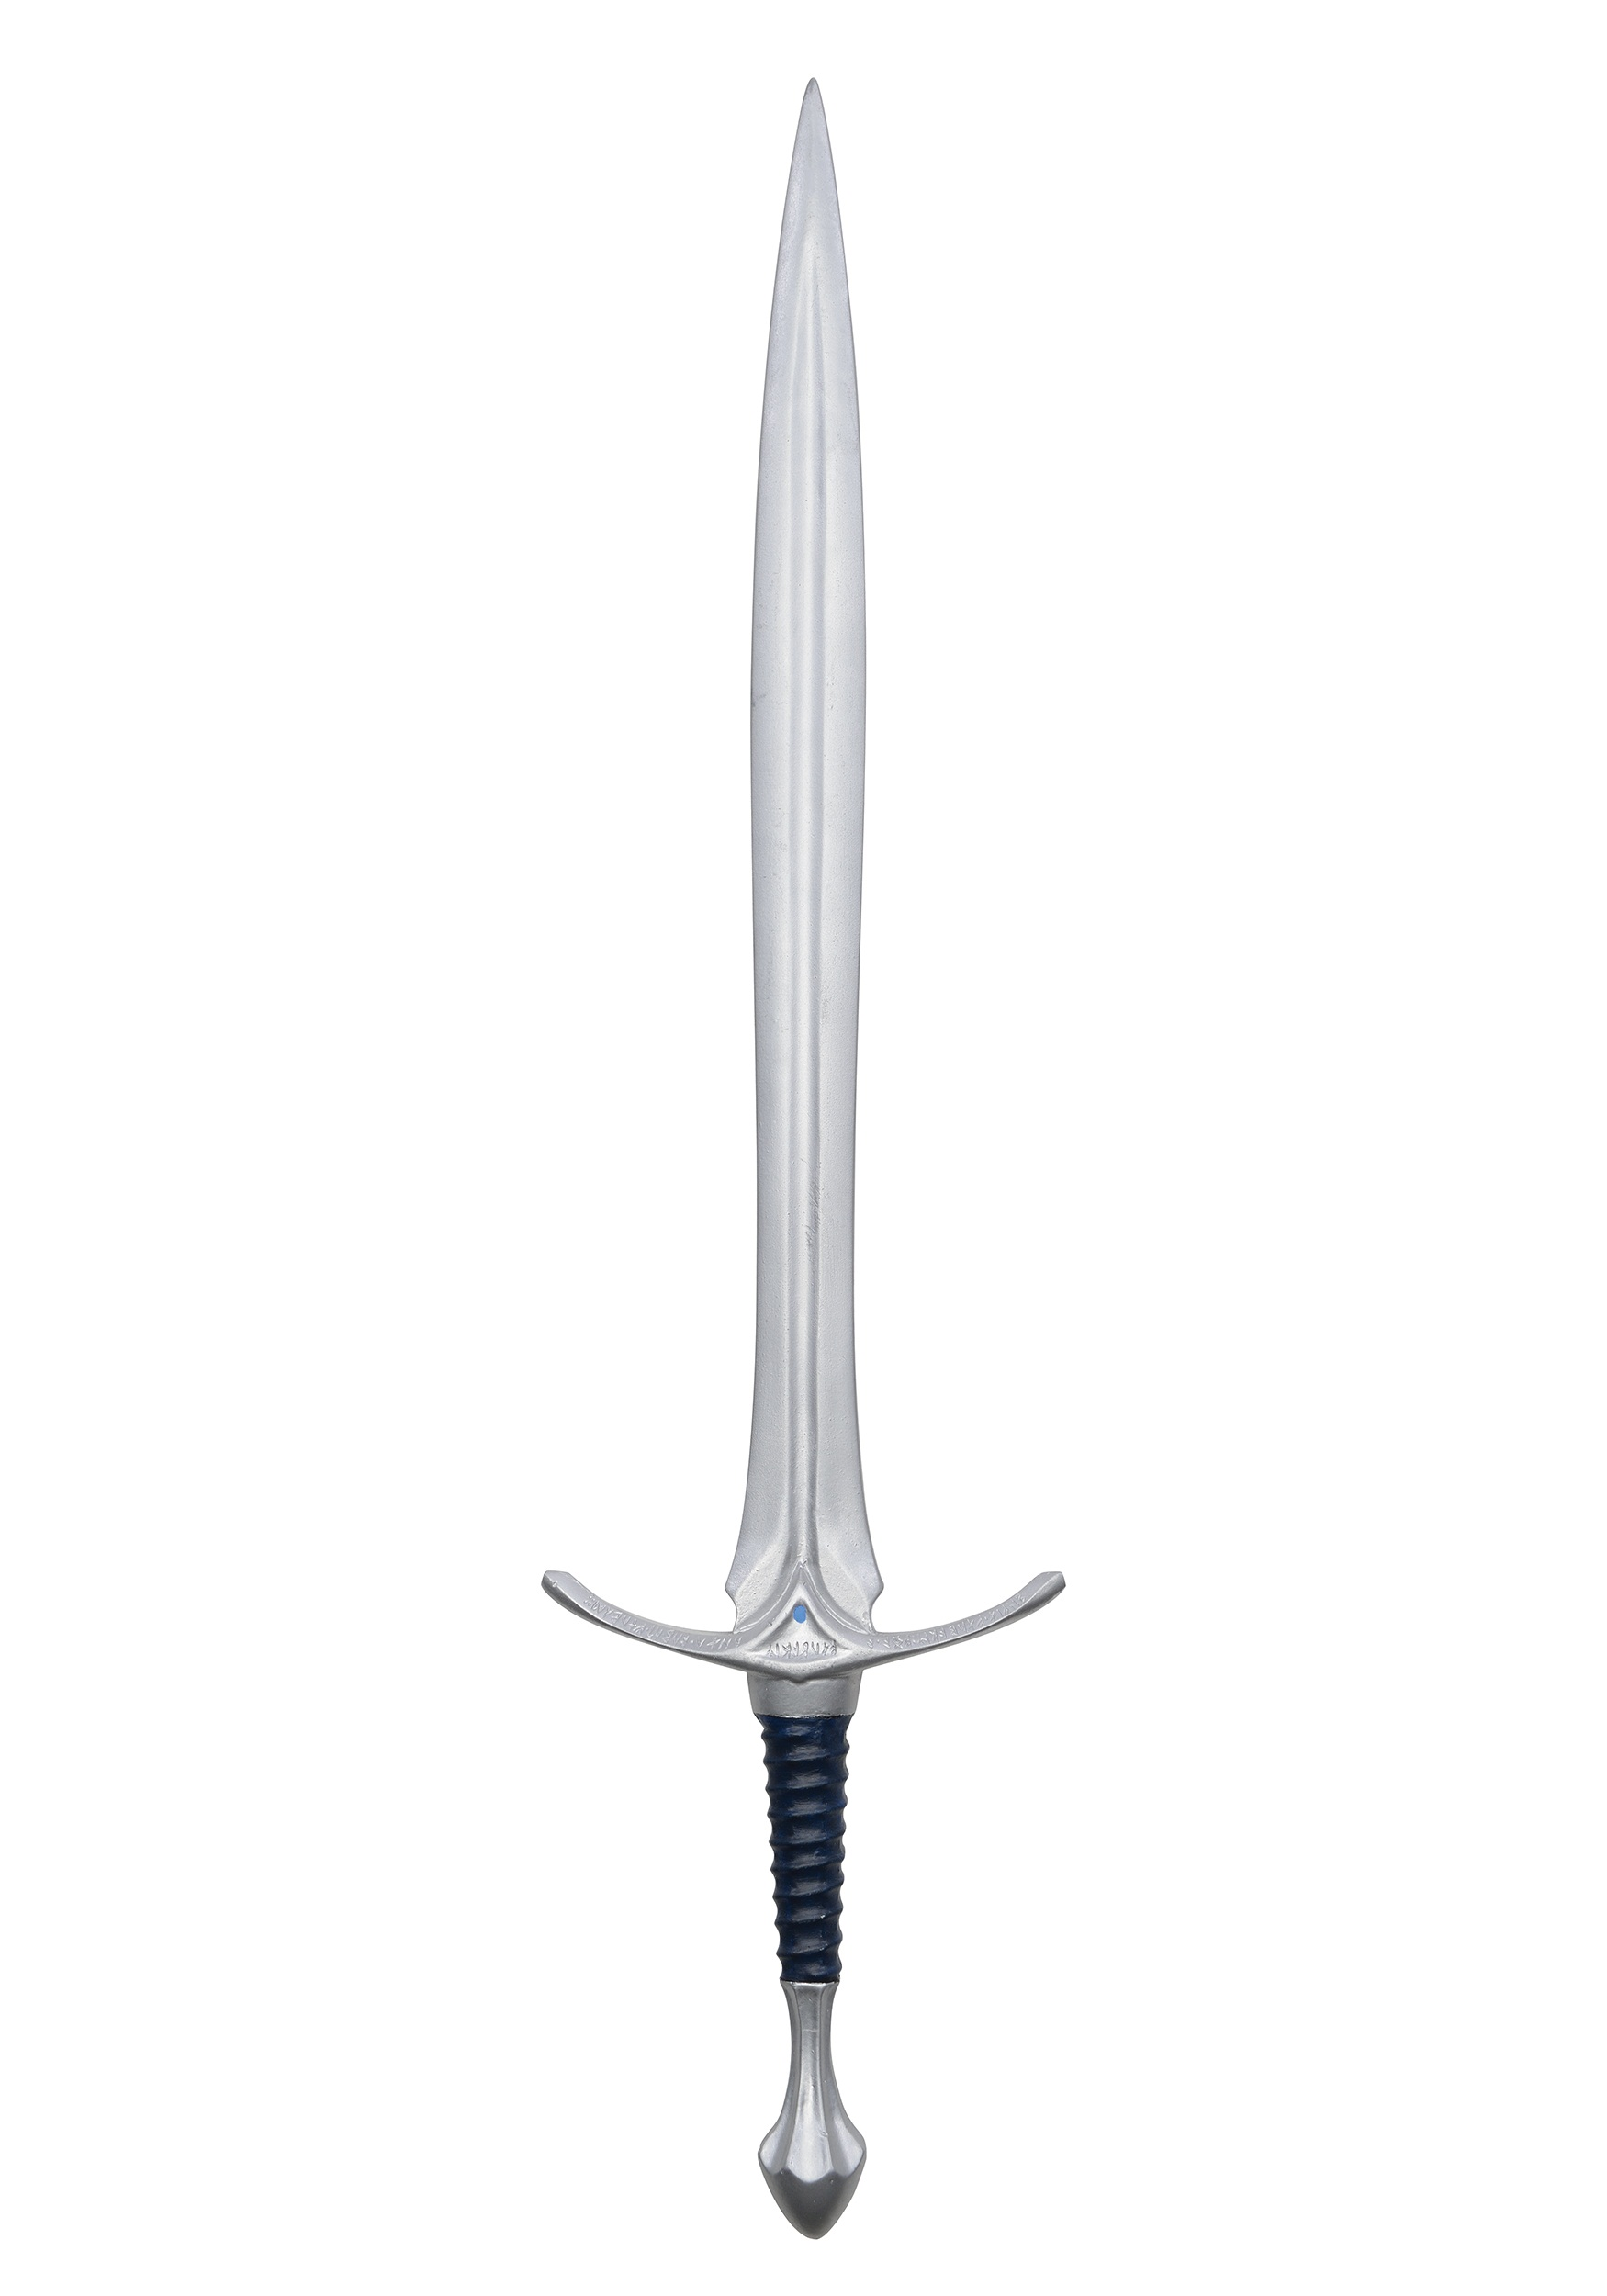 Sword Backgrounds on Wallpapers Vista